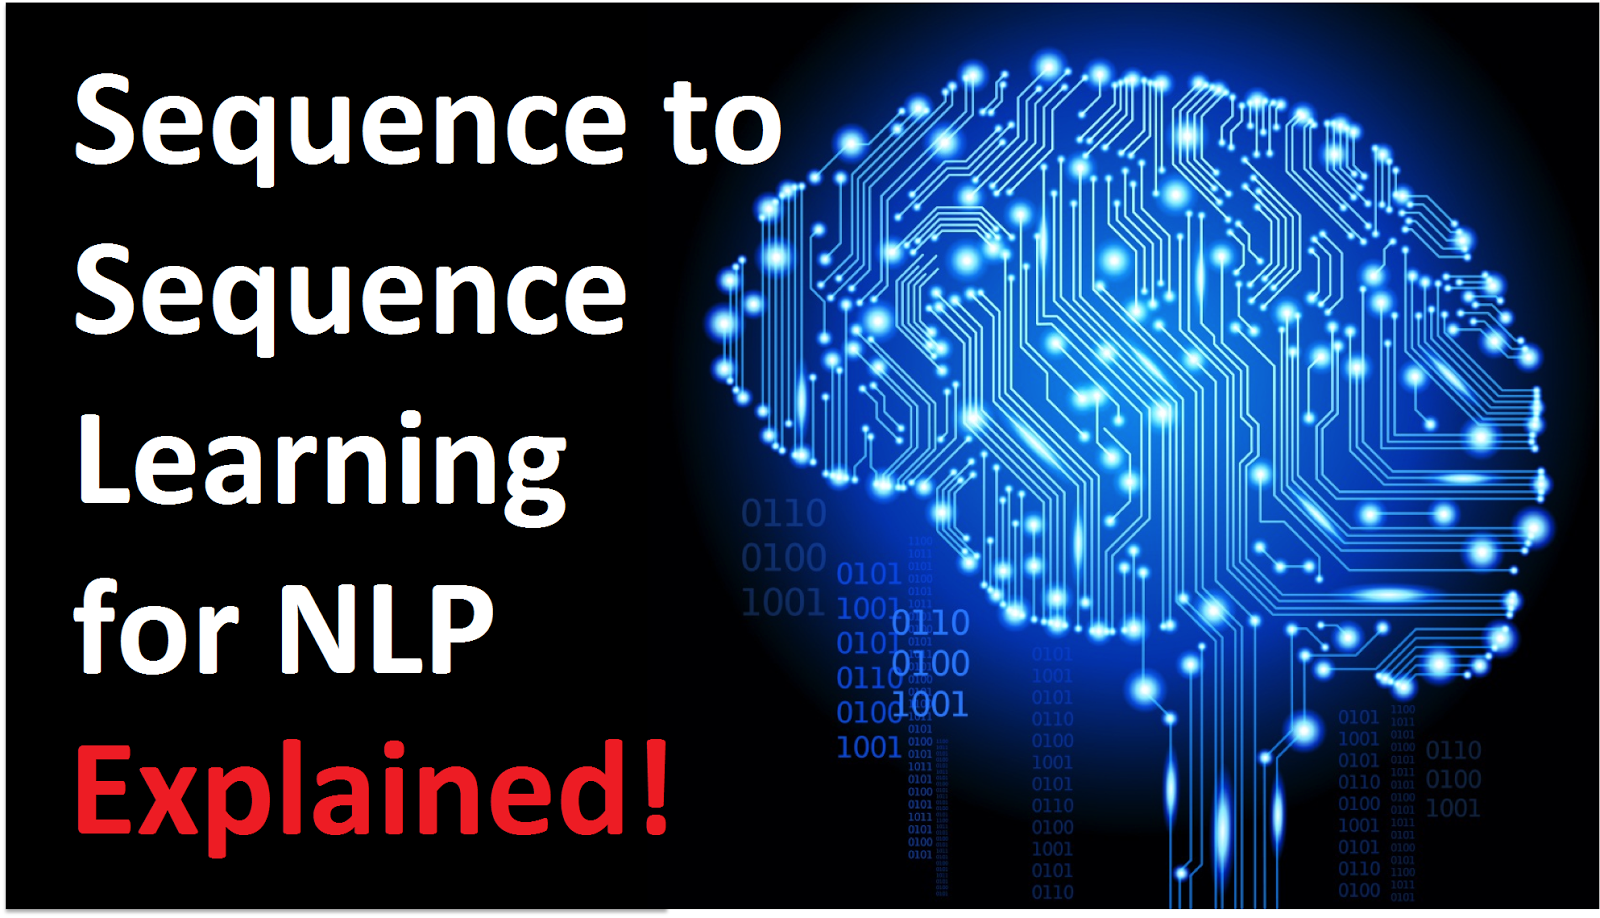 Sequence to Sequence model for NLP